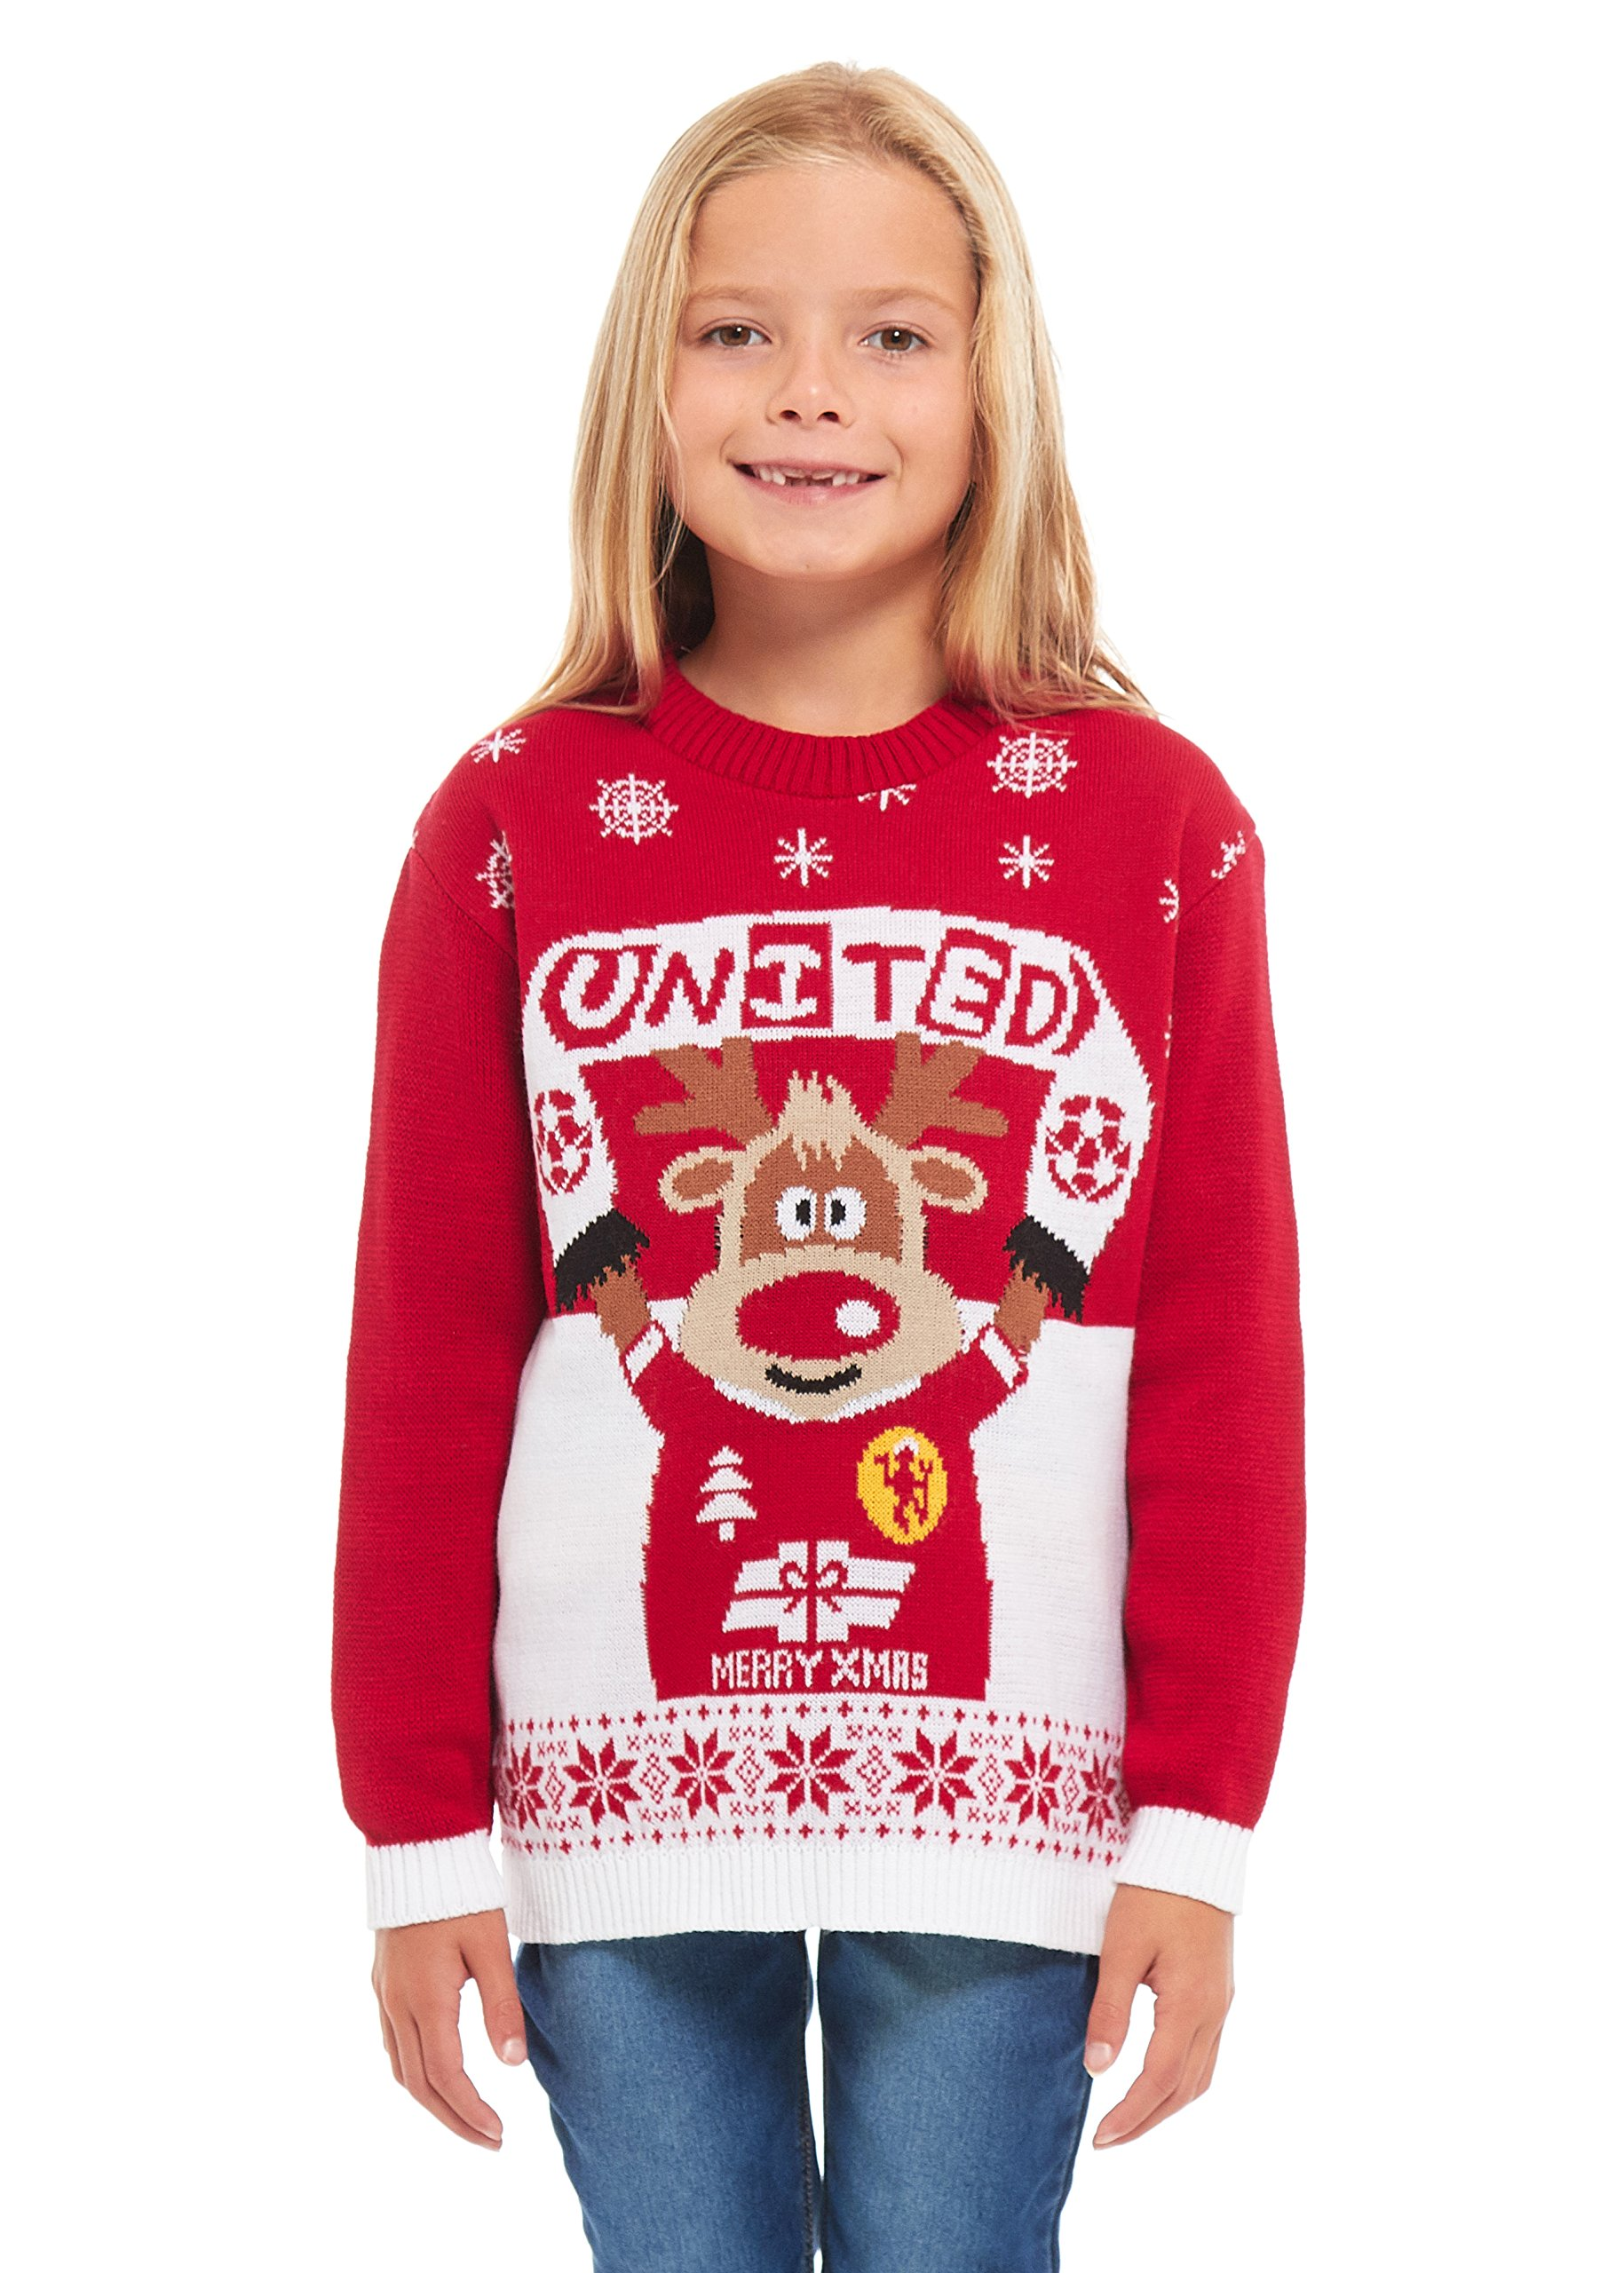 382d51963ee Girls Kids Boys Children Unisex Christmas Xmas Knitted Novelty, Retro, Elf,  Star Wars Football Jumper Sweater Christmas Xmas Exclusively to HSA Ltd ...